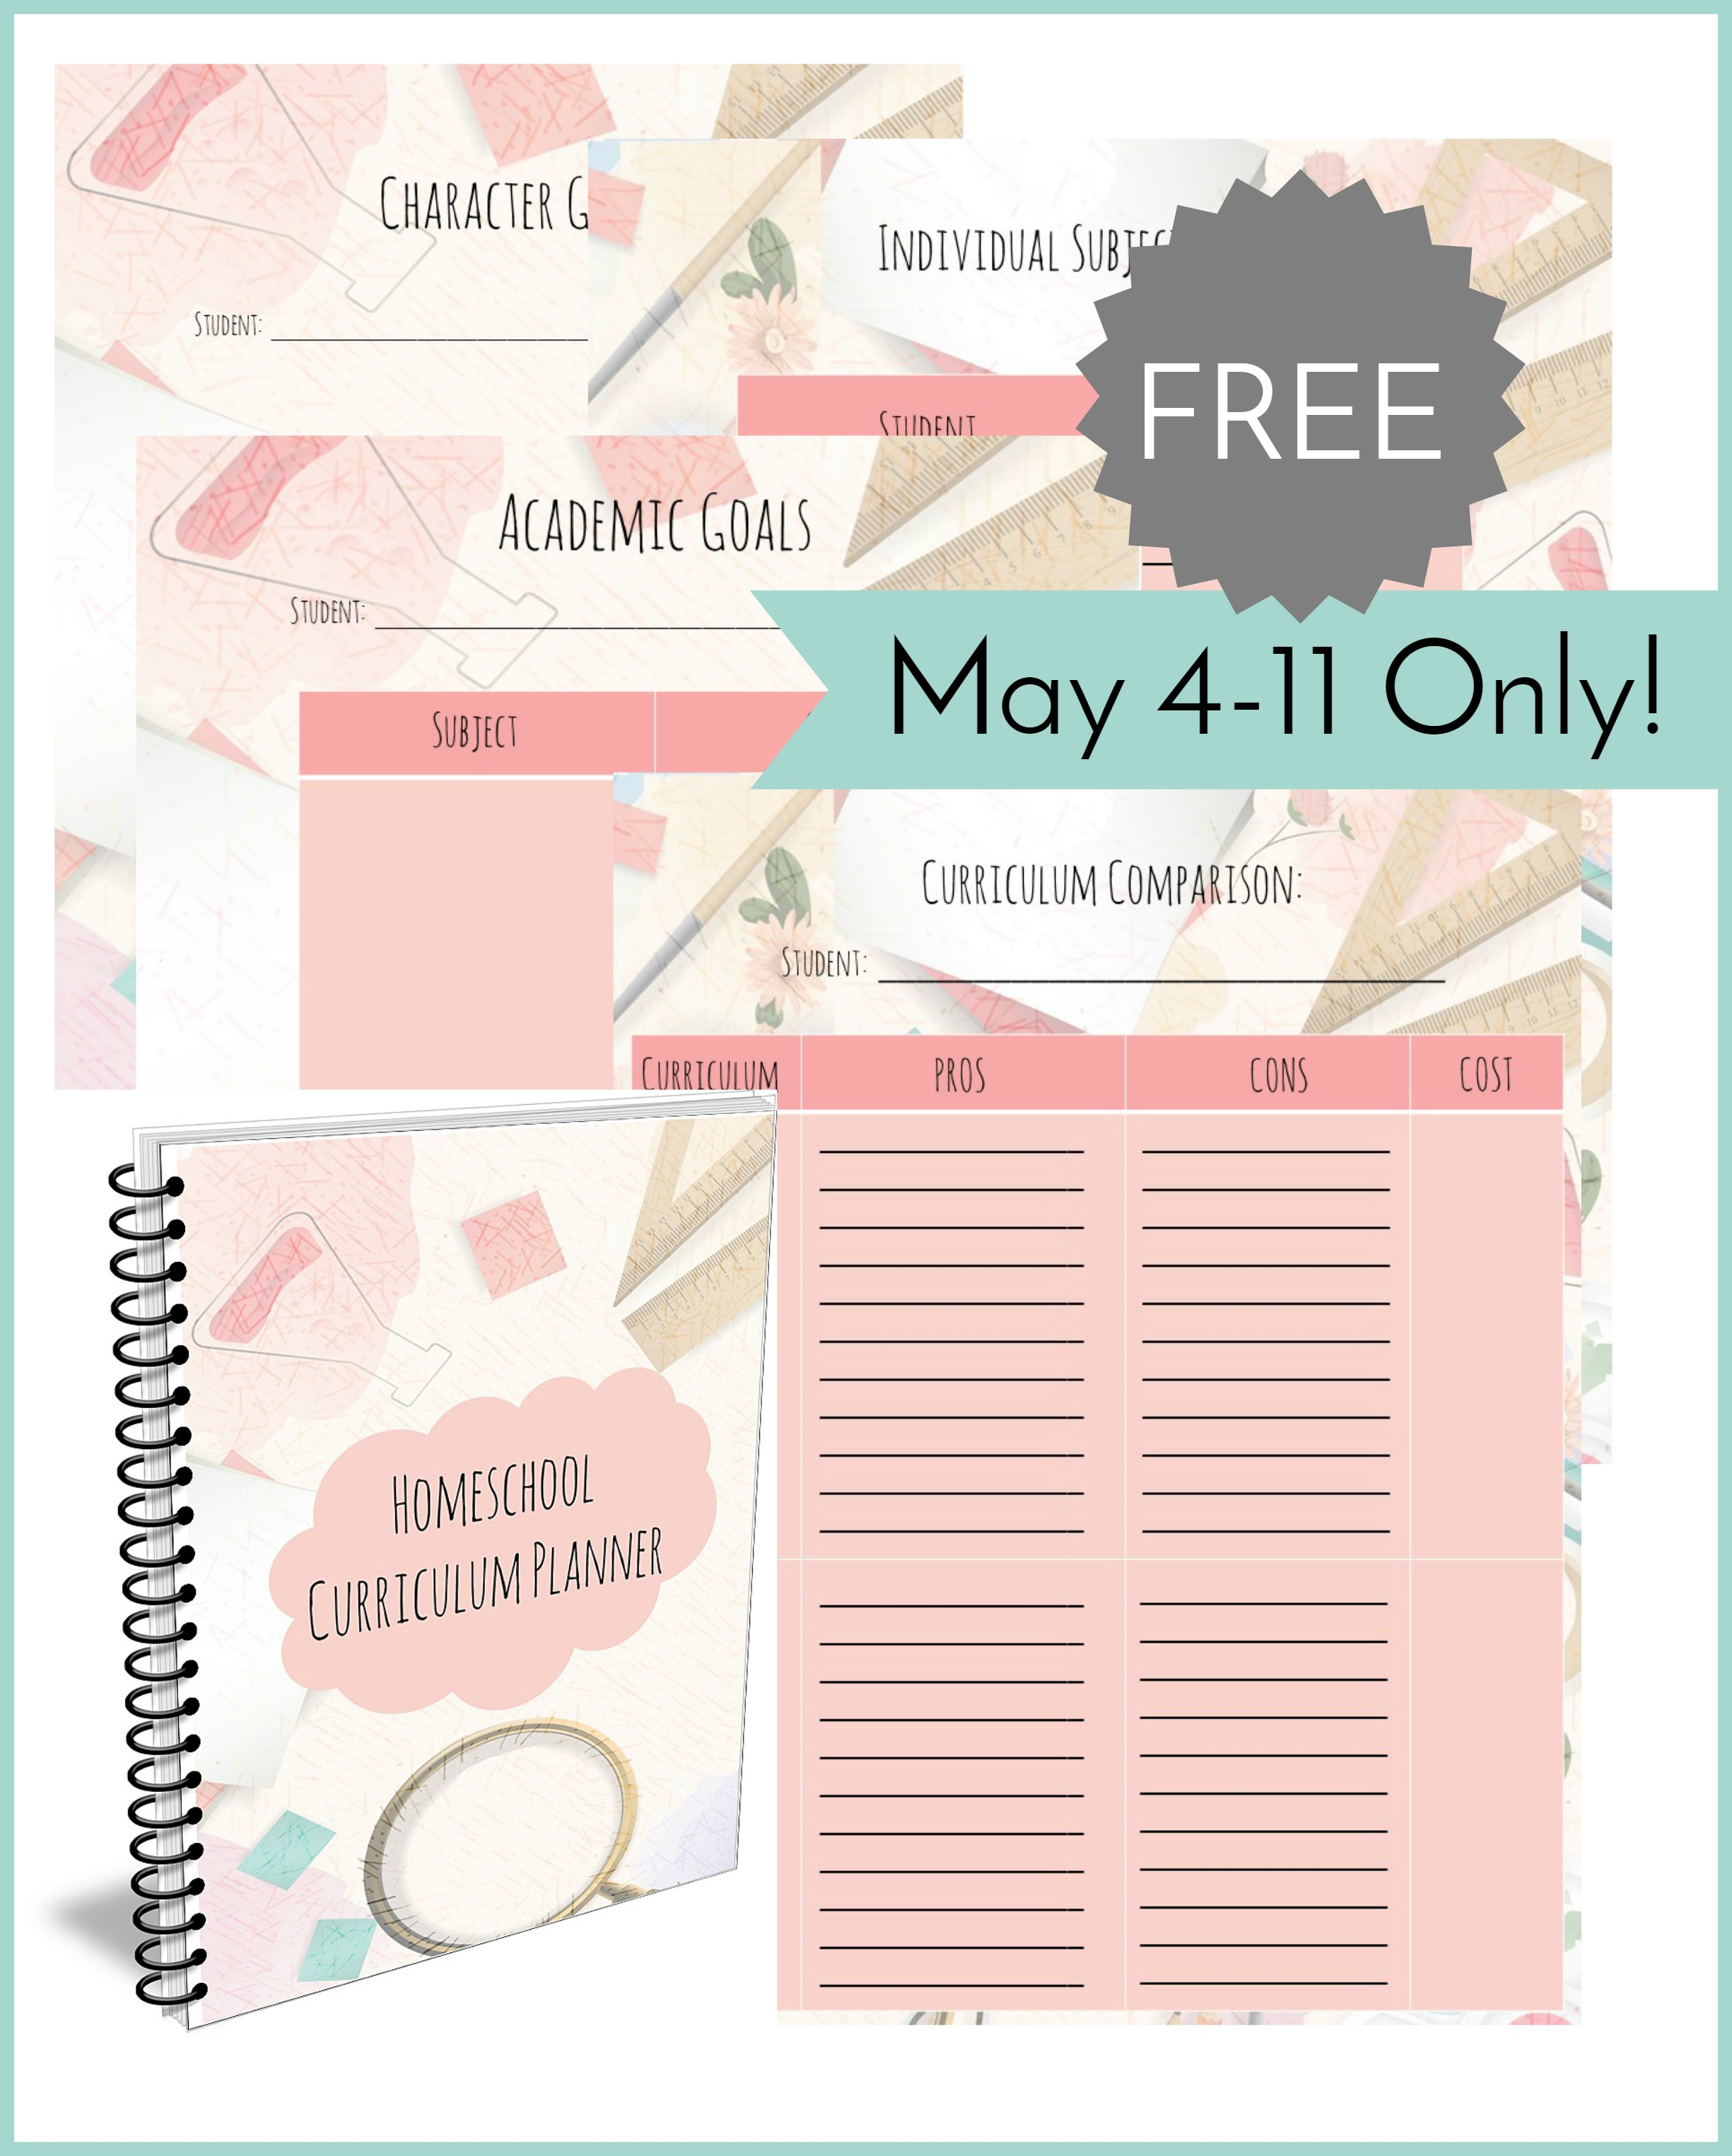 Worksheet Homeschool Free Curriculum homeschool curriculum planner free for a limited time planning worksheets determining your familys needs